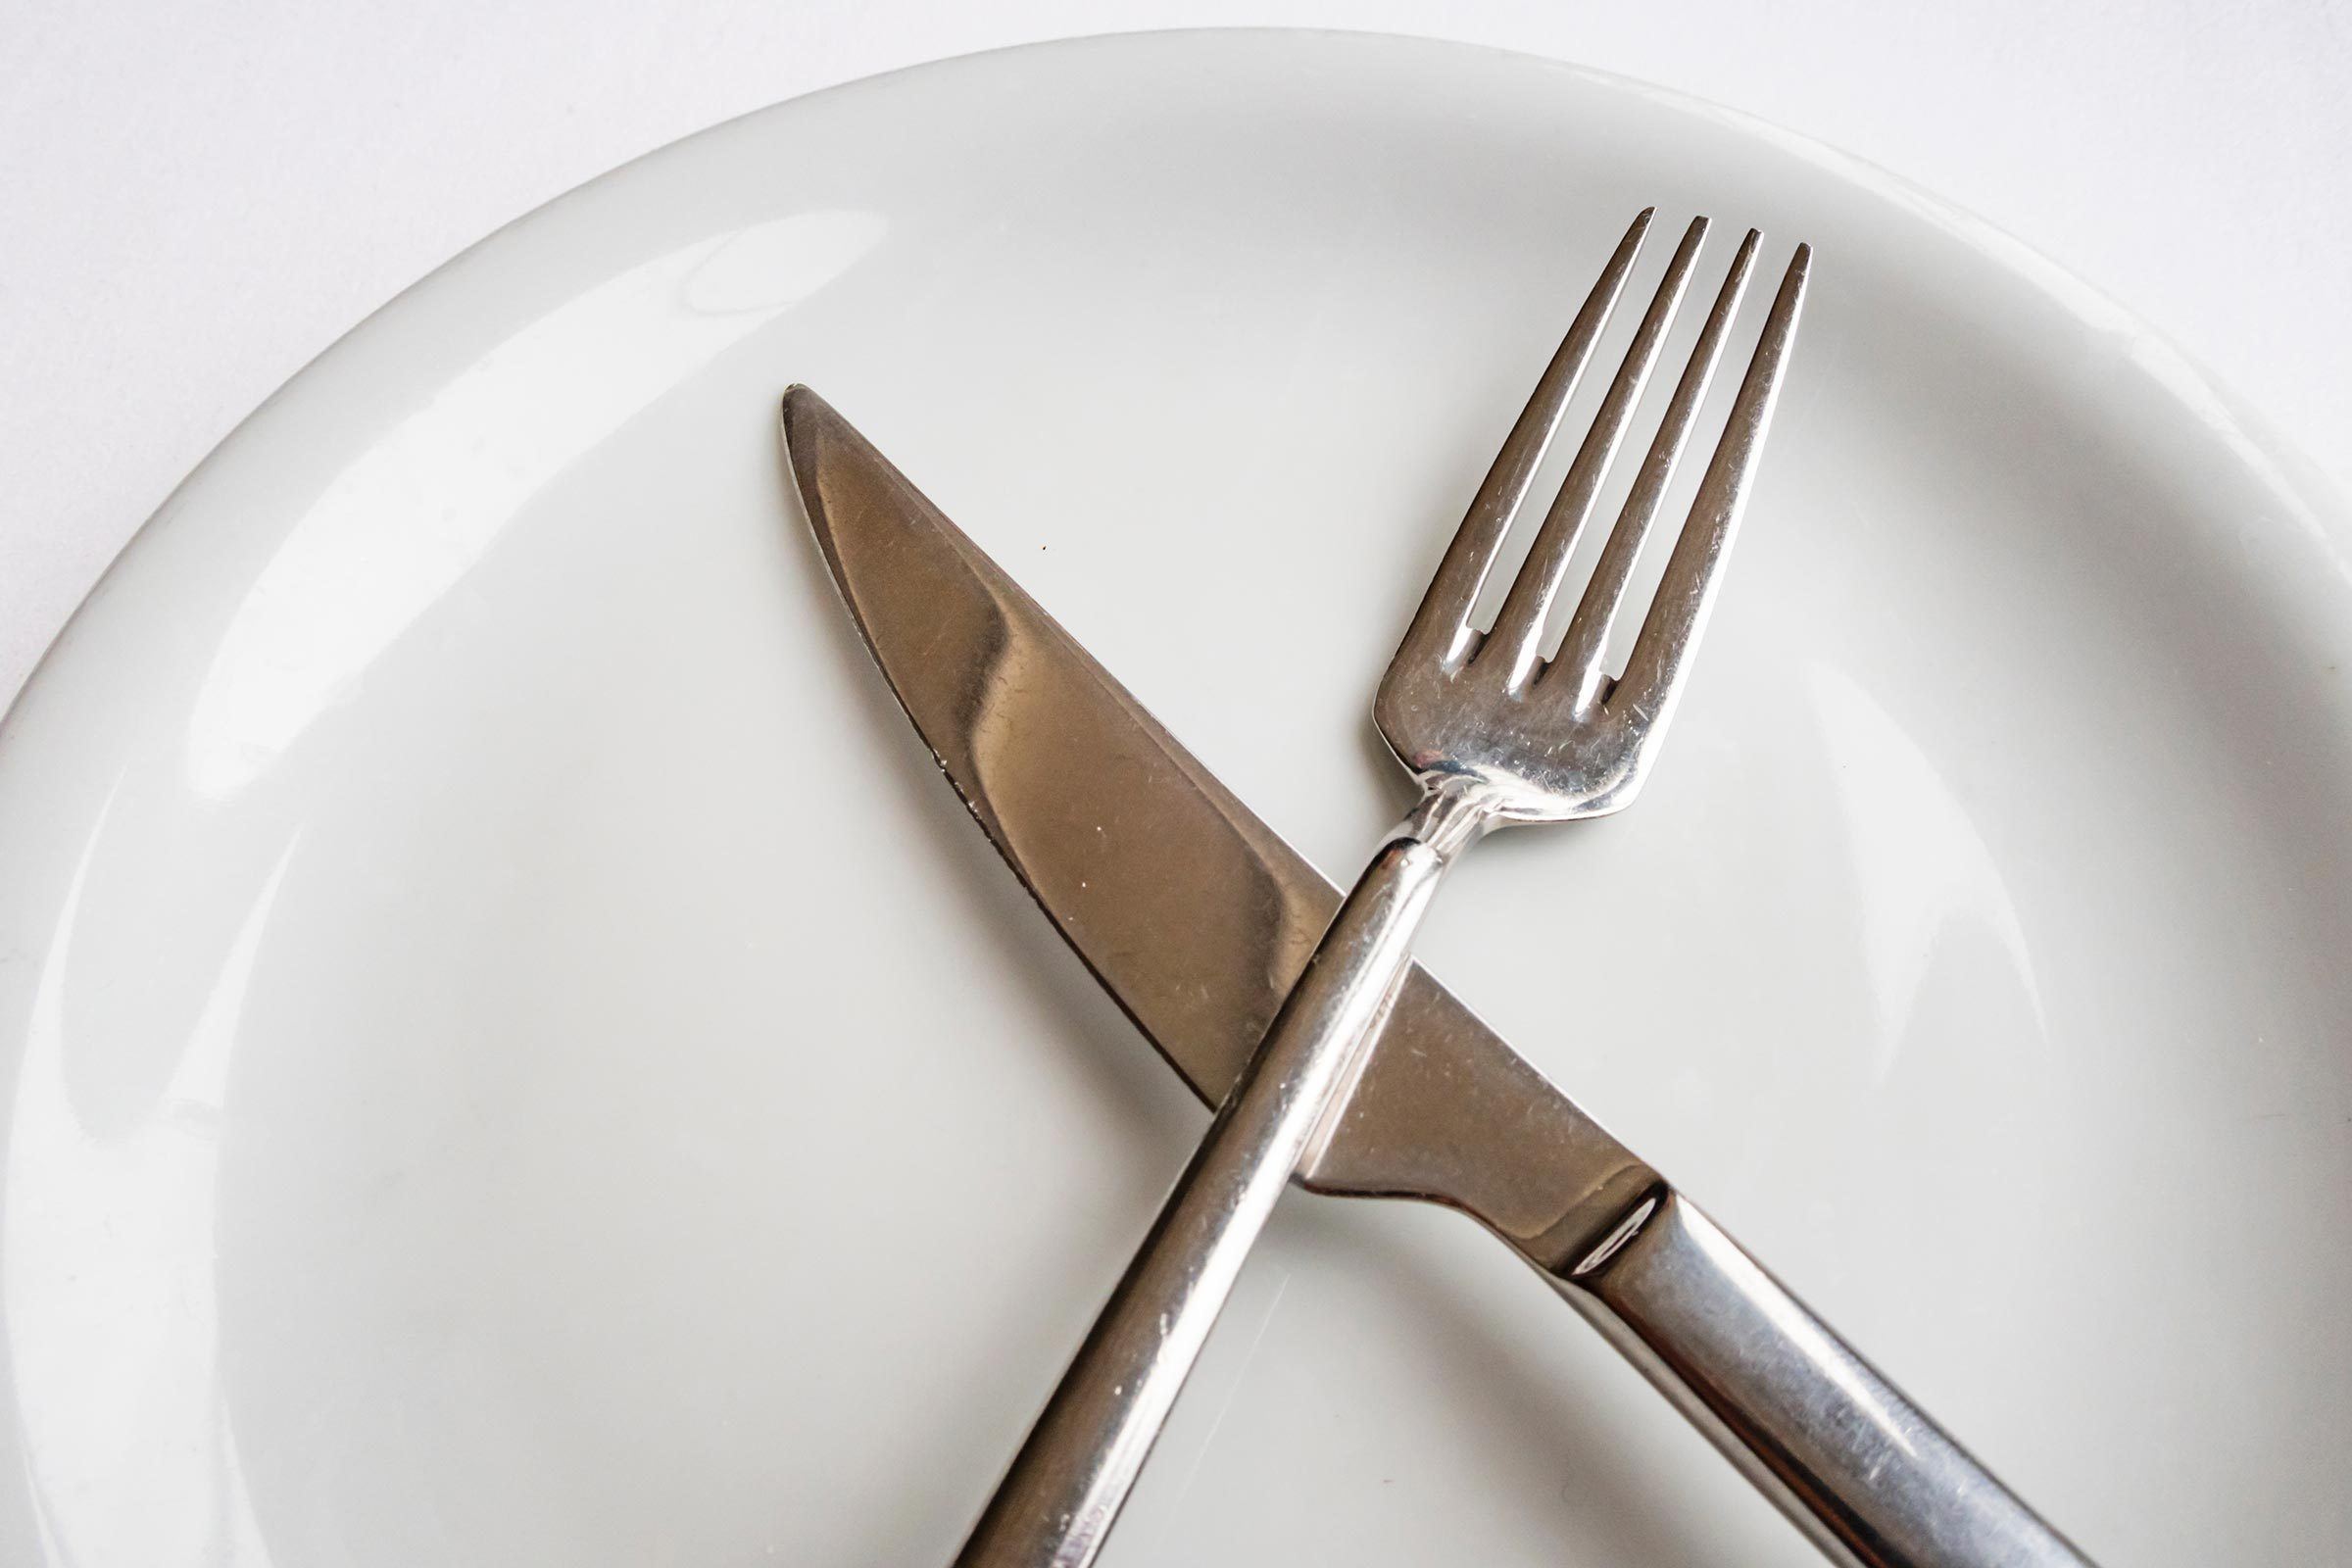 close up fork and knife on plate